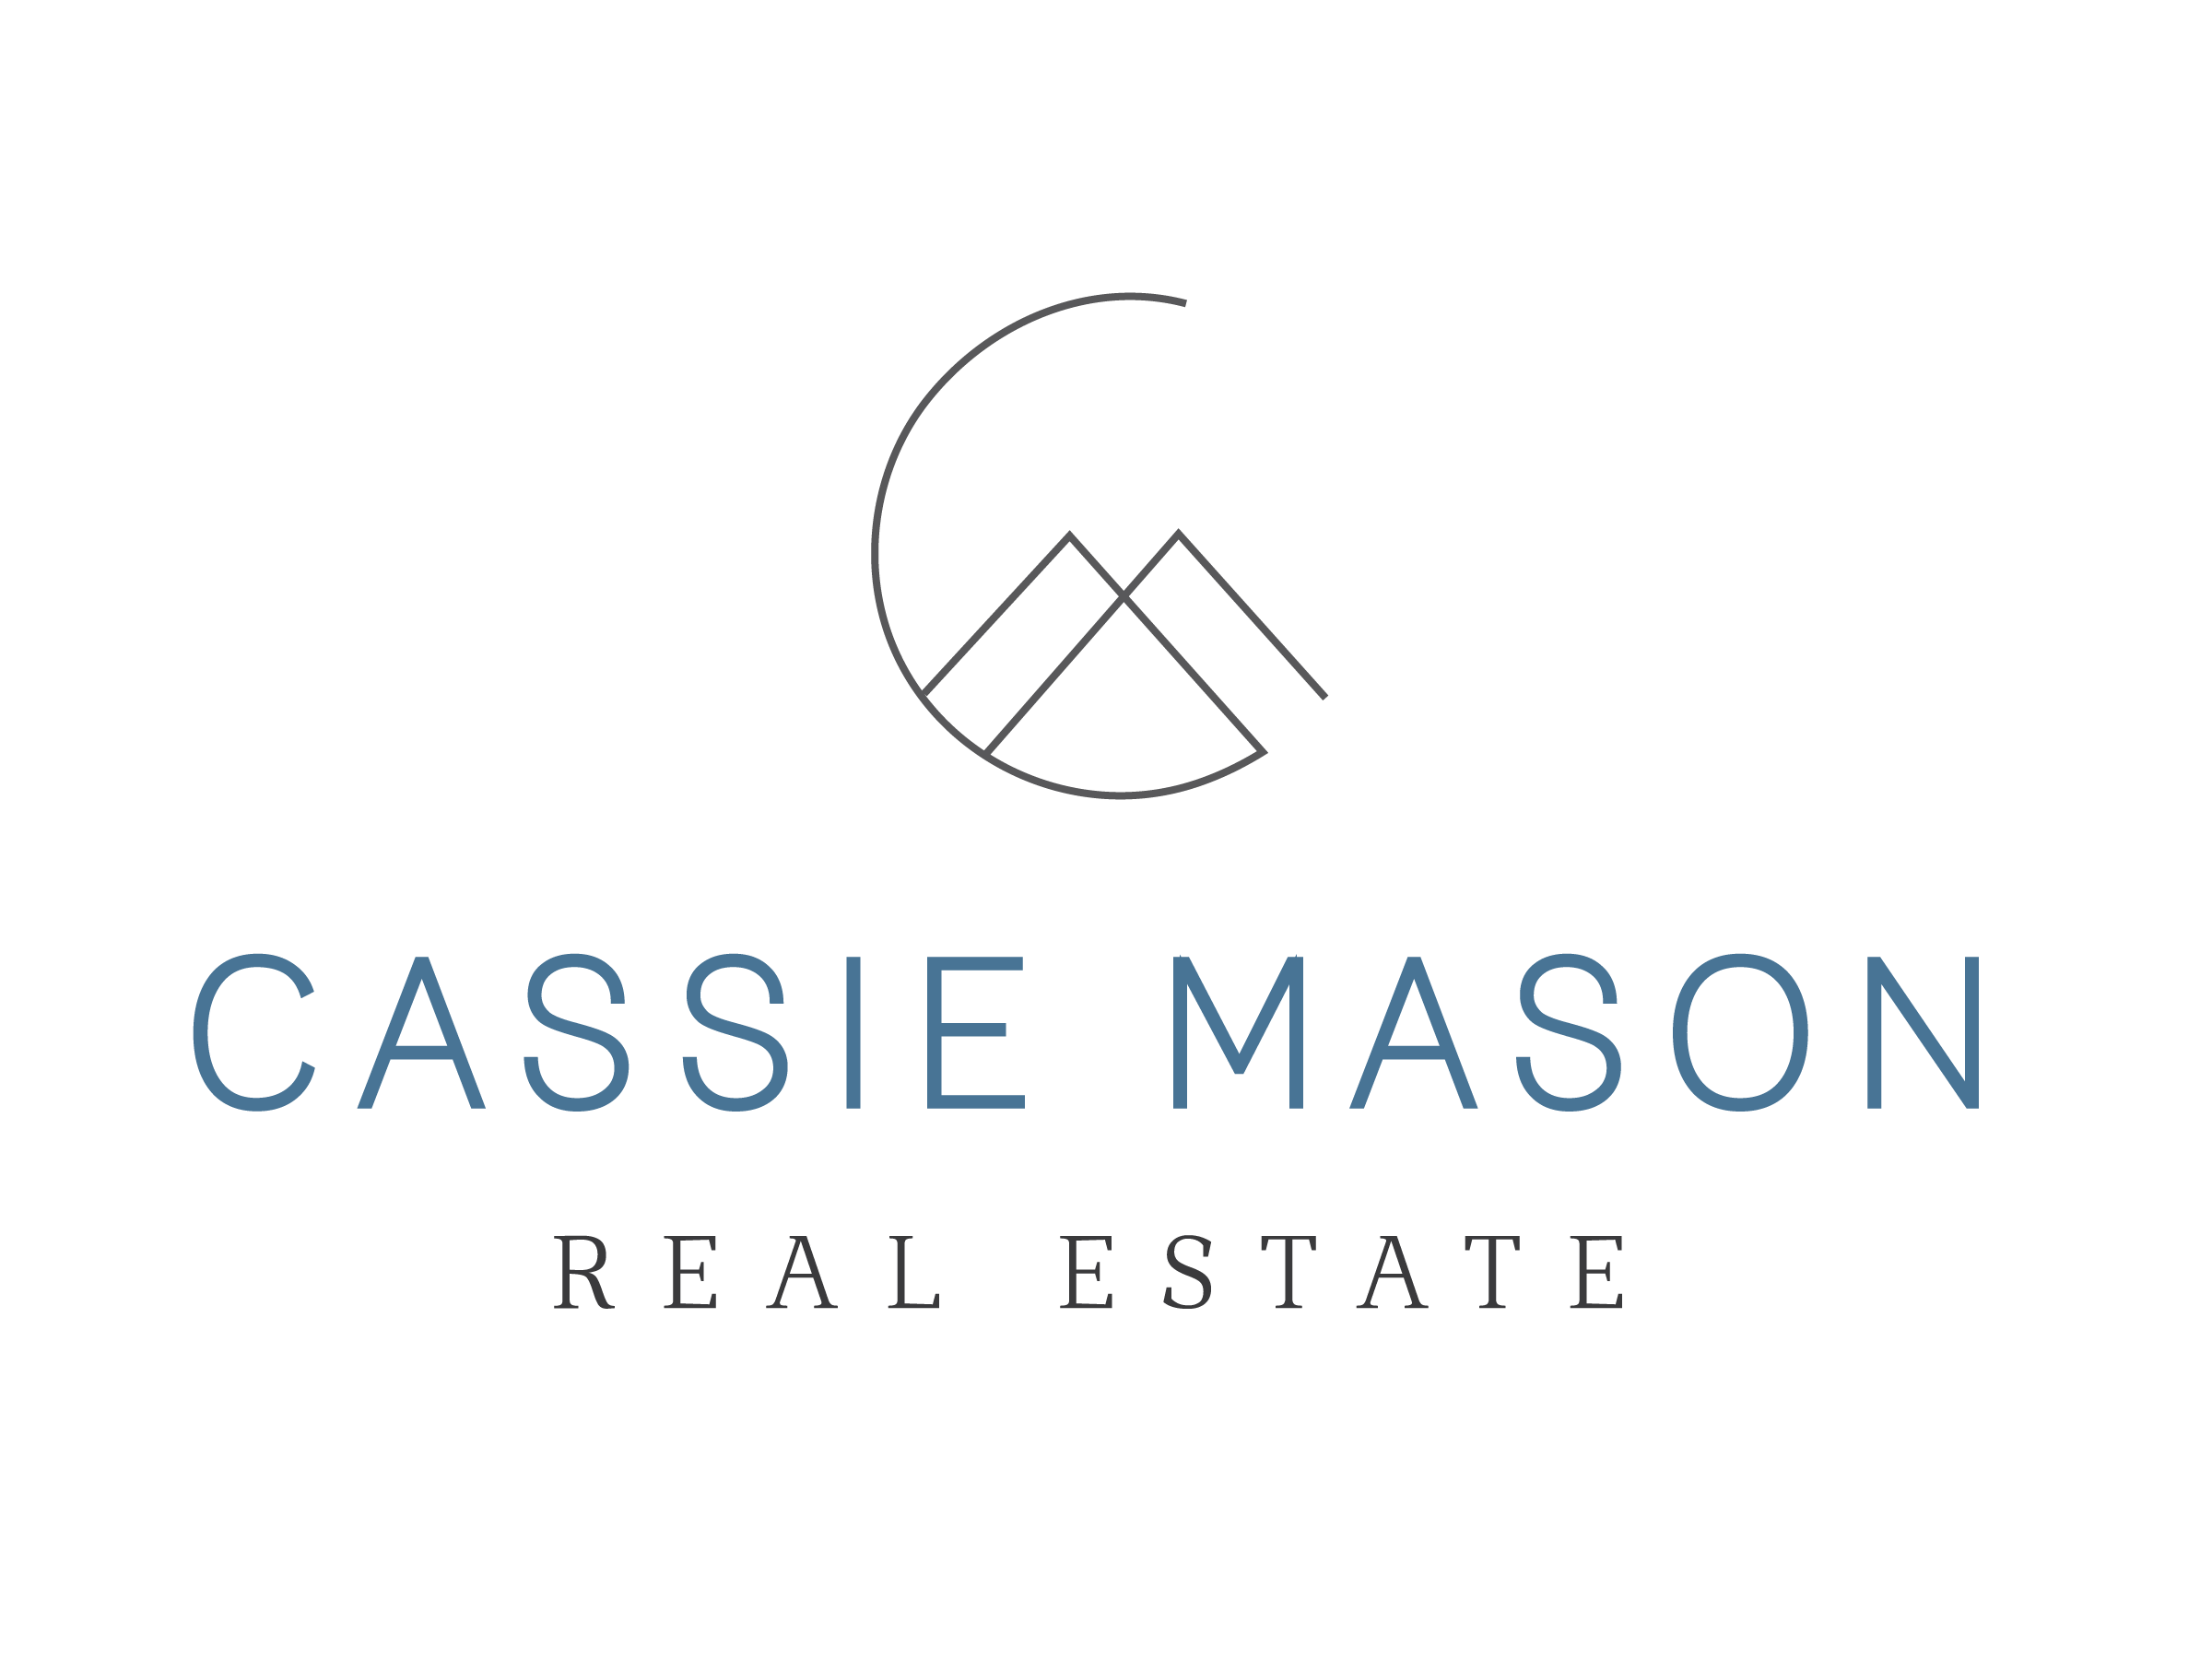 Cassie Mason Real Estate